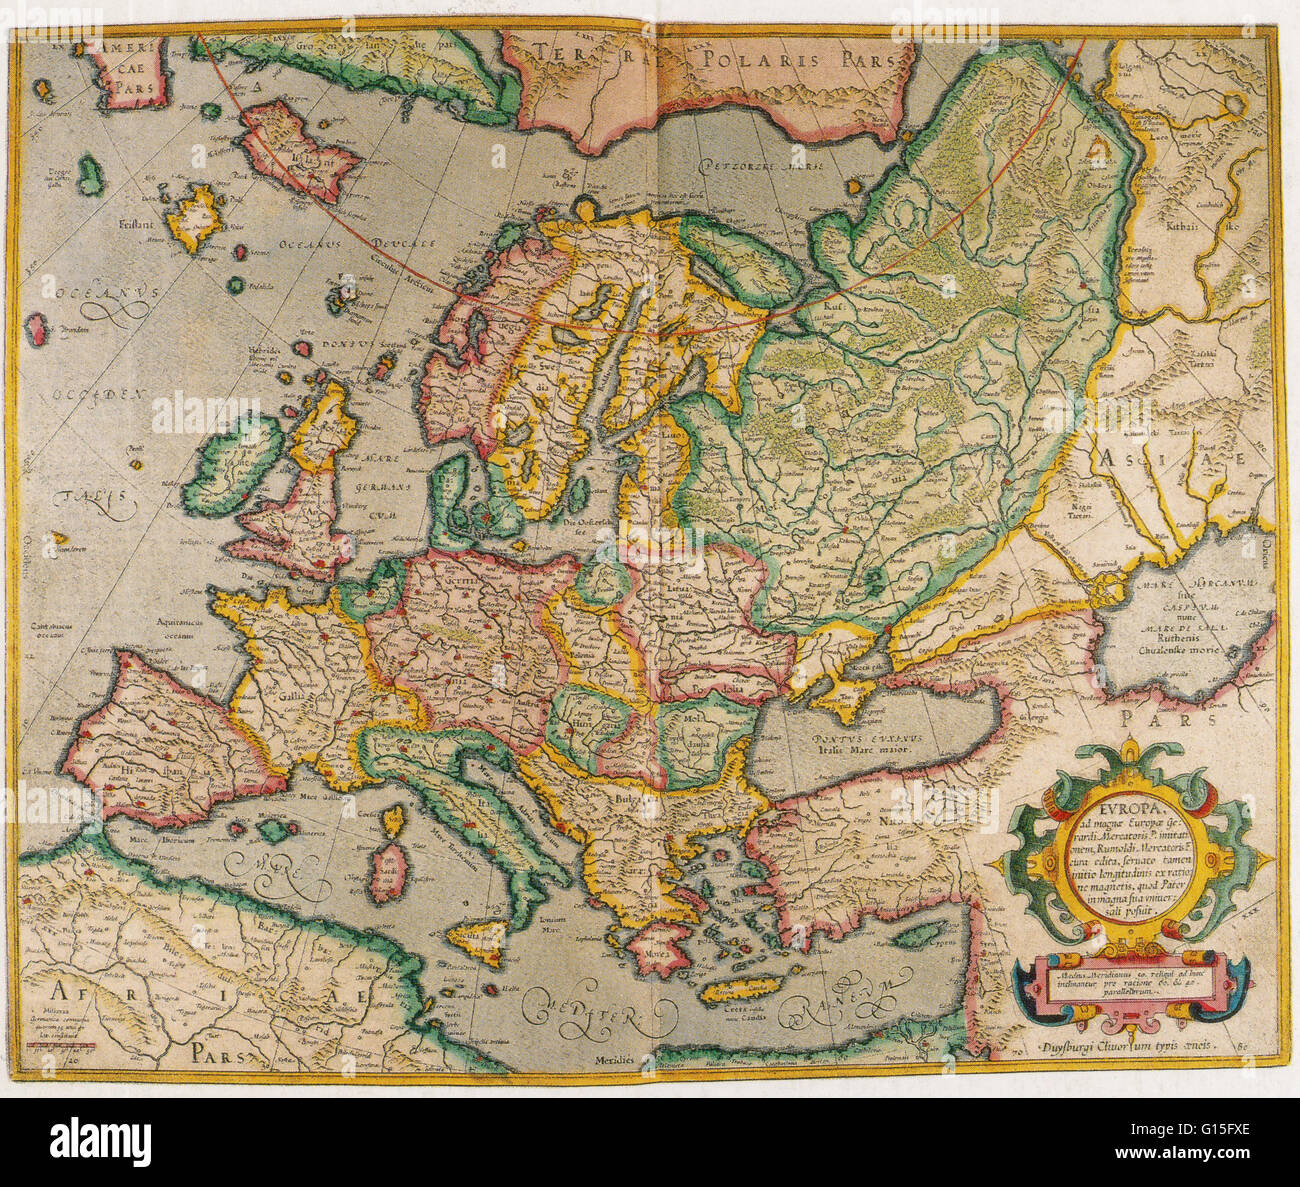 North Sea Europe Map.North Europe Map Stock Photos North Europe Map Stock Images Alamy